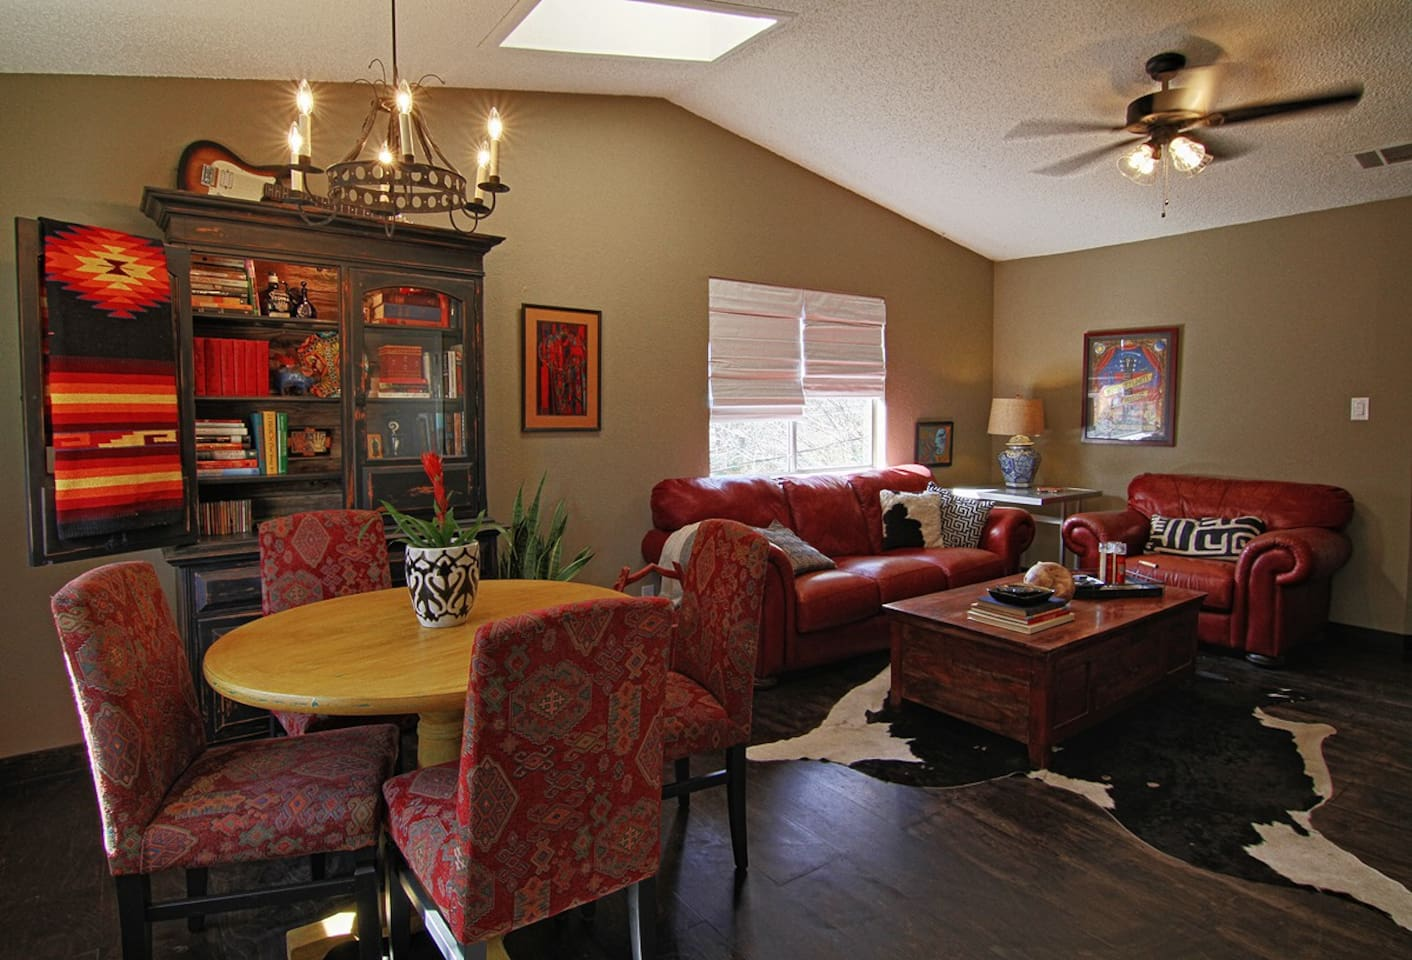 Plenty of space in the open living/diningwith vaulted ceilings and skylight.